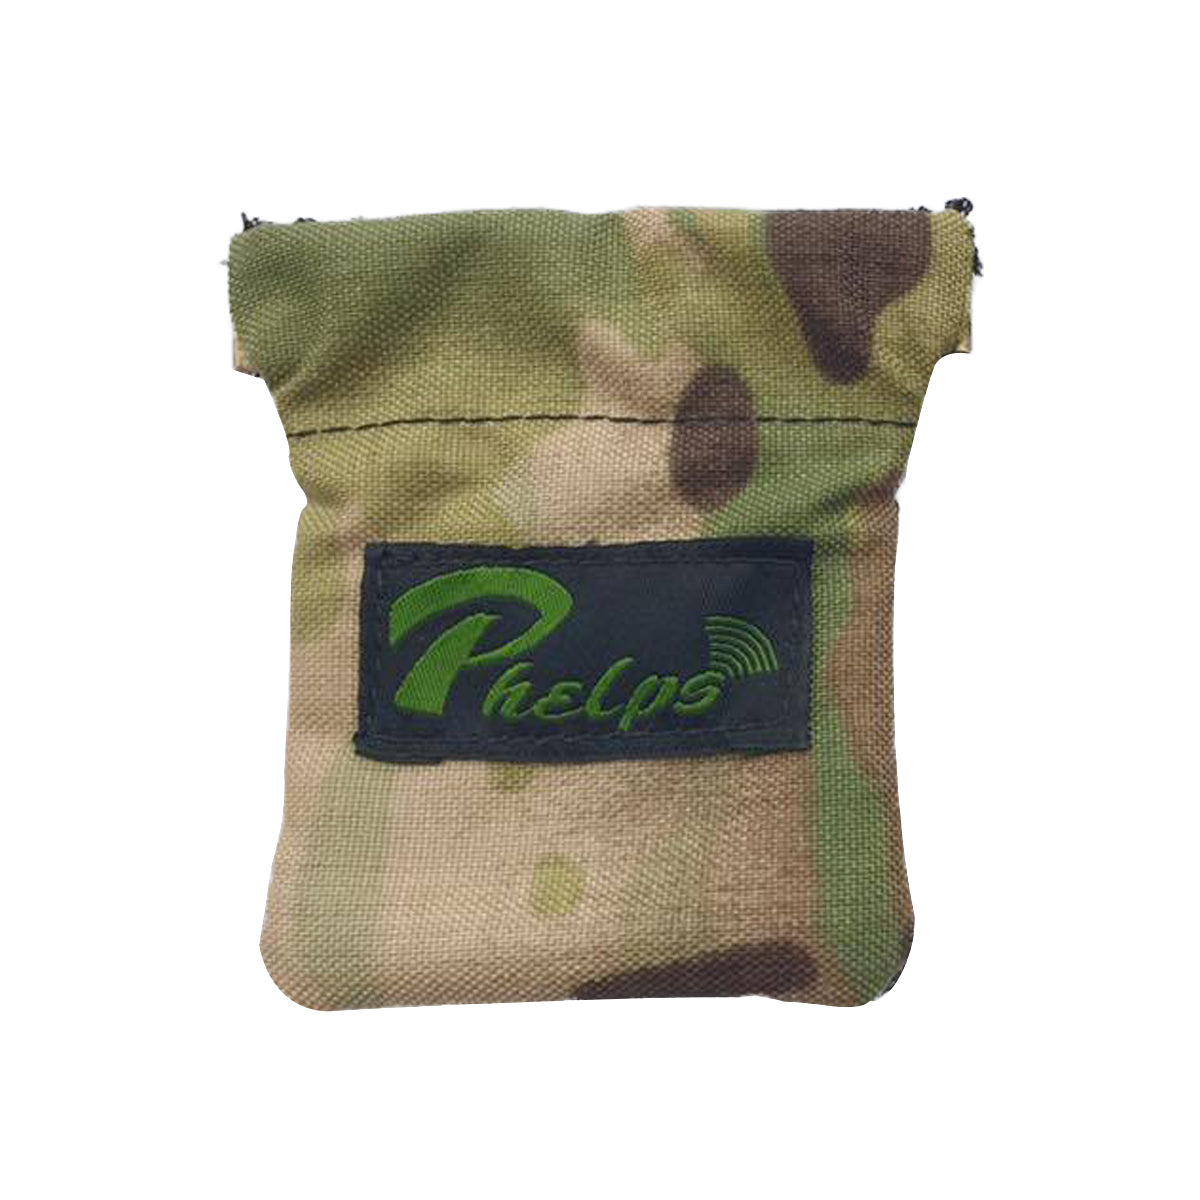 Phelps Squeeze Call Pouch